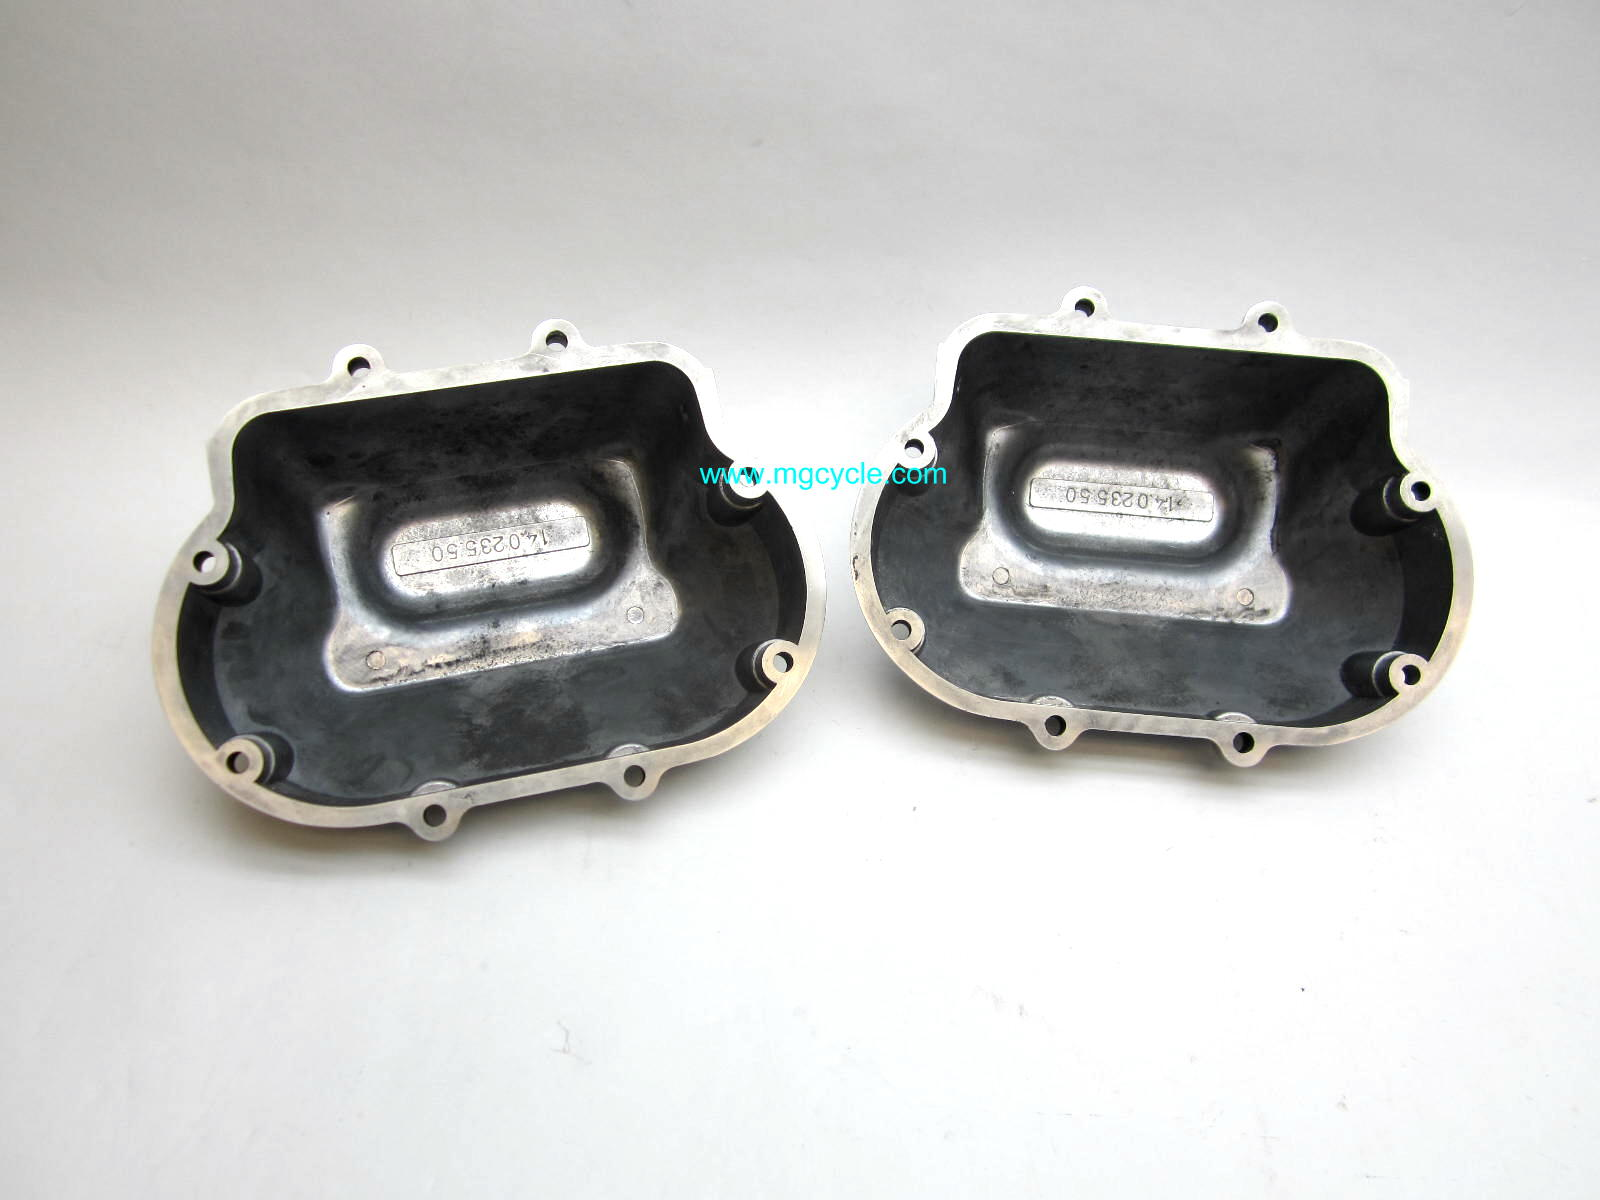 Valve cover pair, 850 LeMans, 850 T3, V1000 Convert, G5, polishe